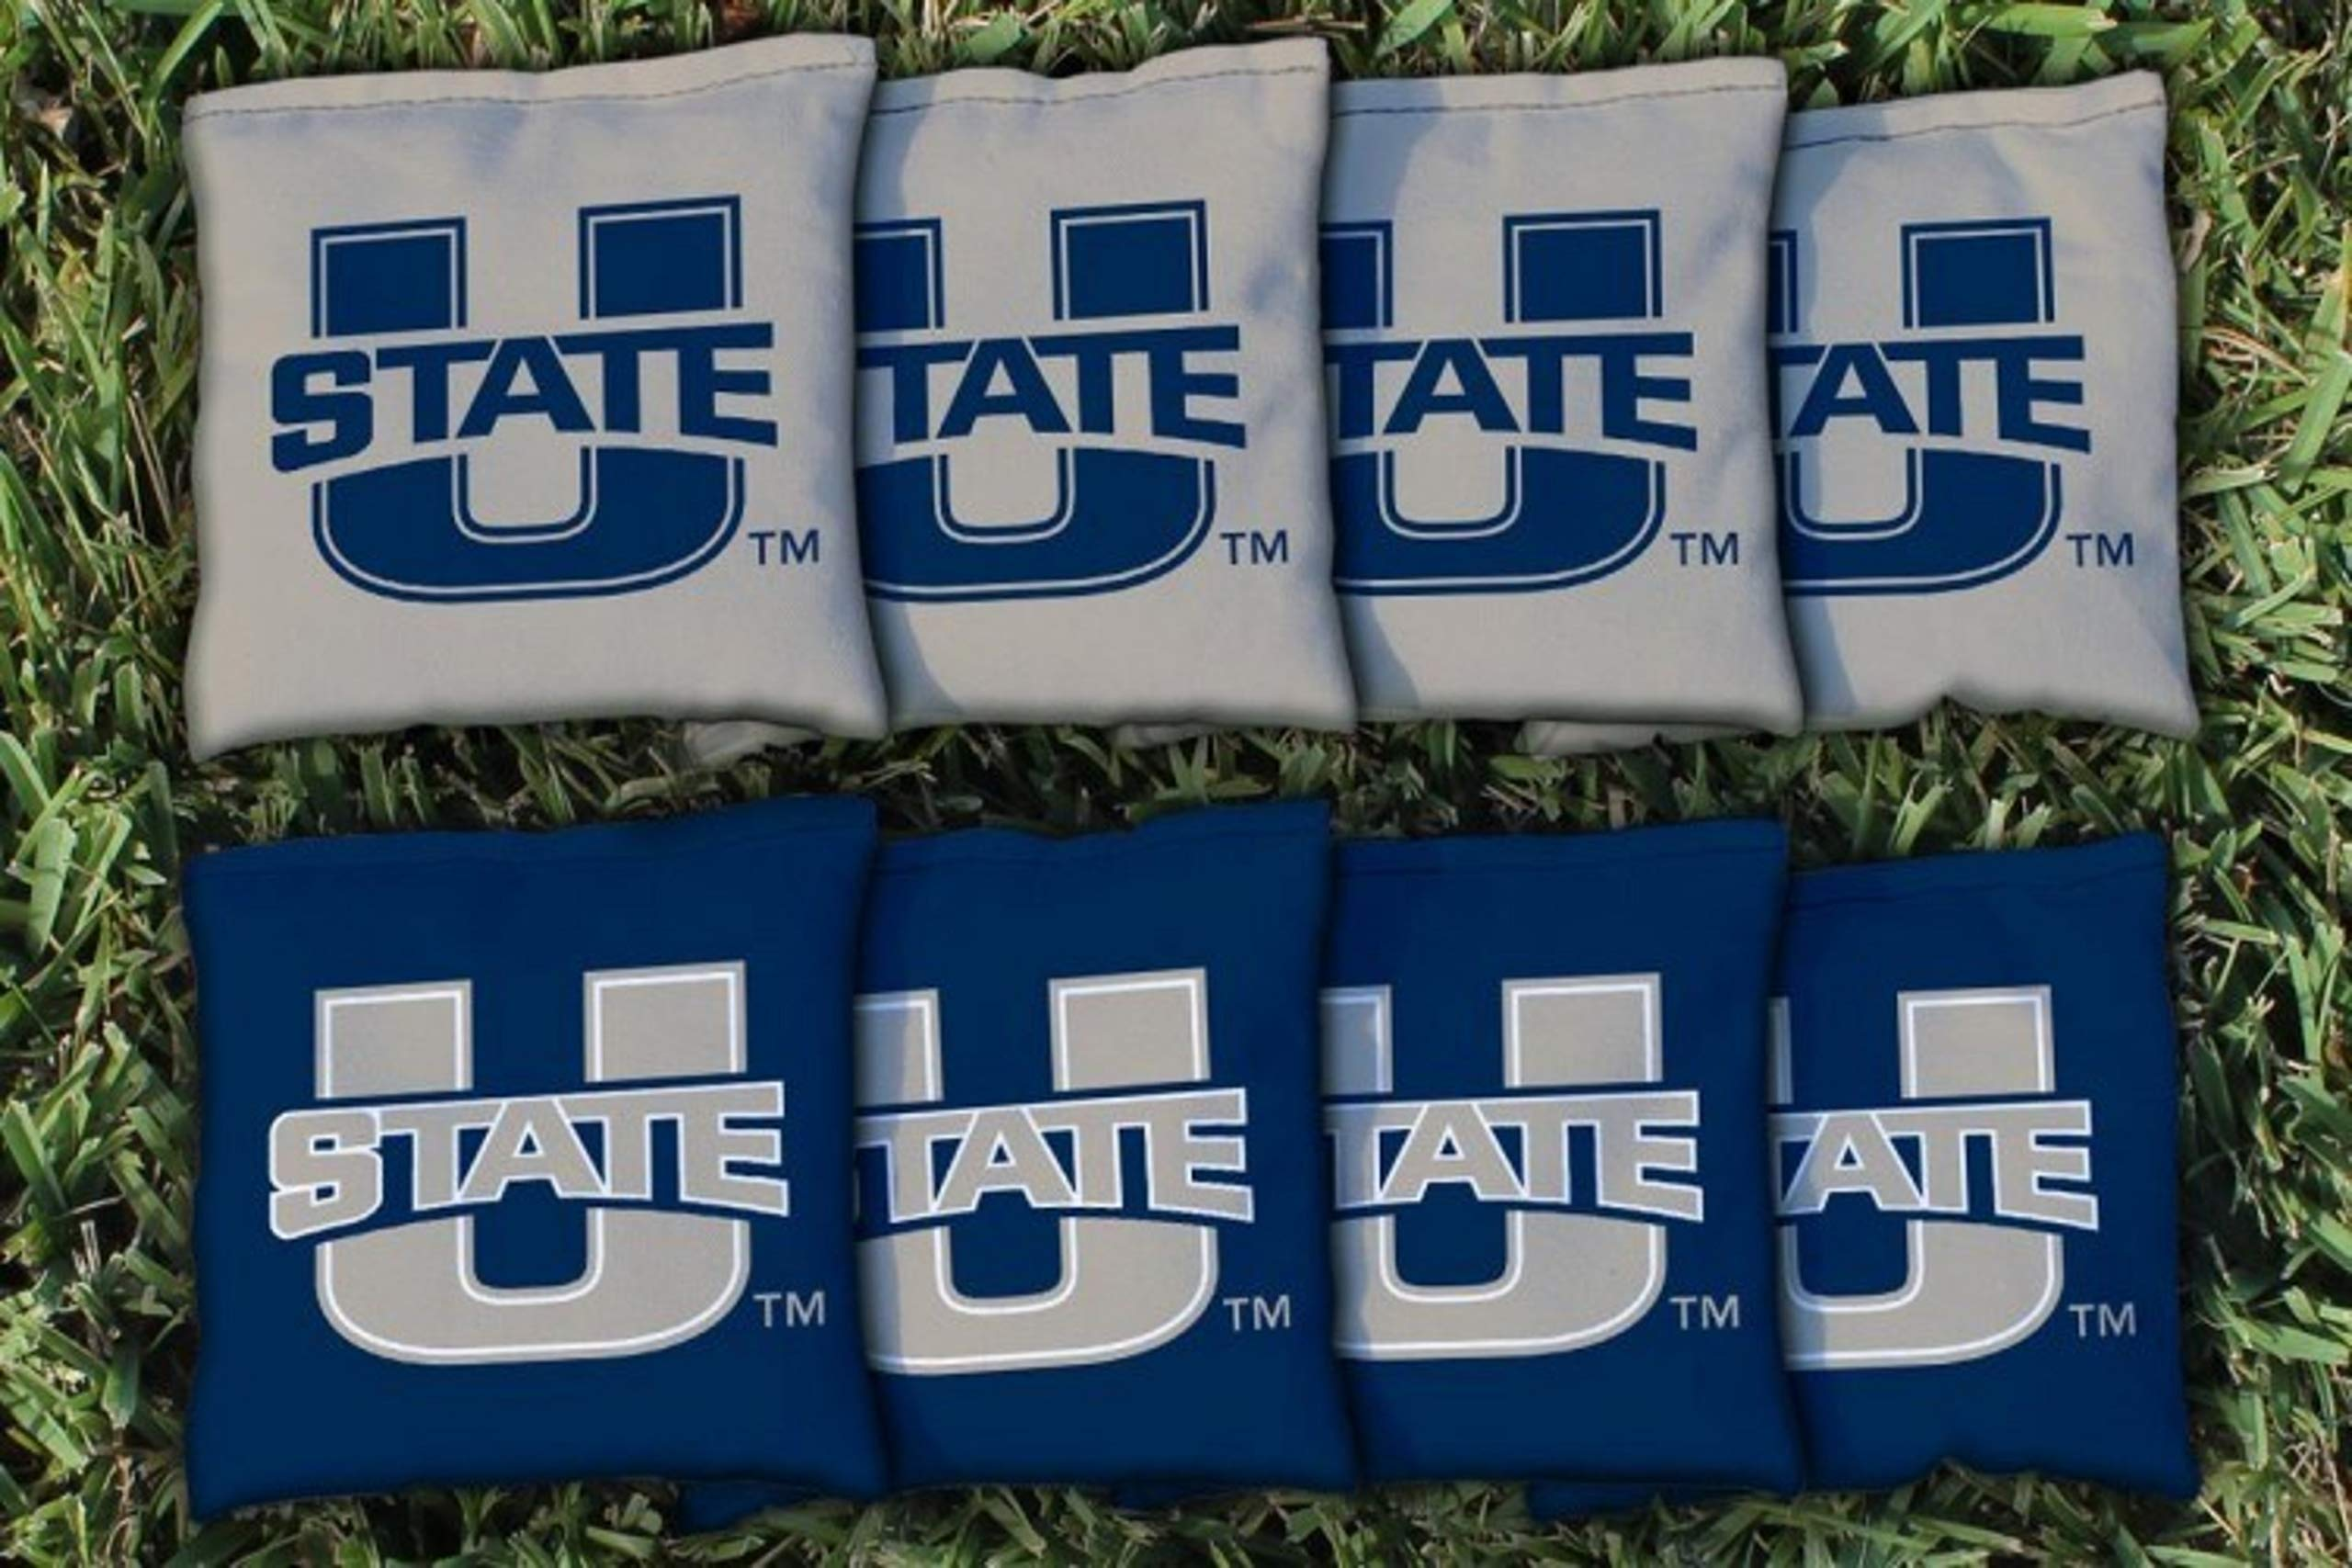 Victory Tailgate NCAA Collegiate Regulation Cornhole Game Bag Set (8 Bags Included, Corn-Filled) - Utah State Aggies by Victory Tailgate